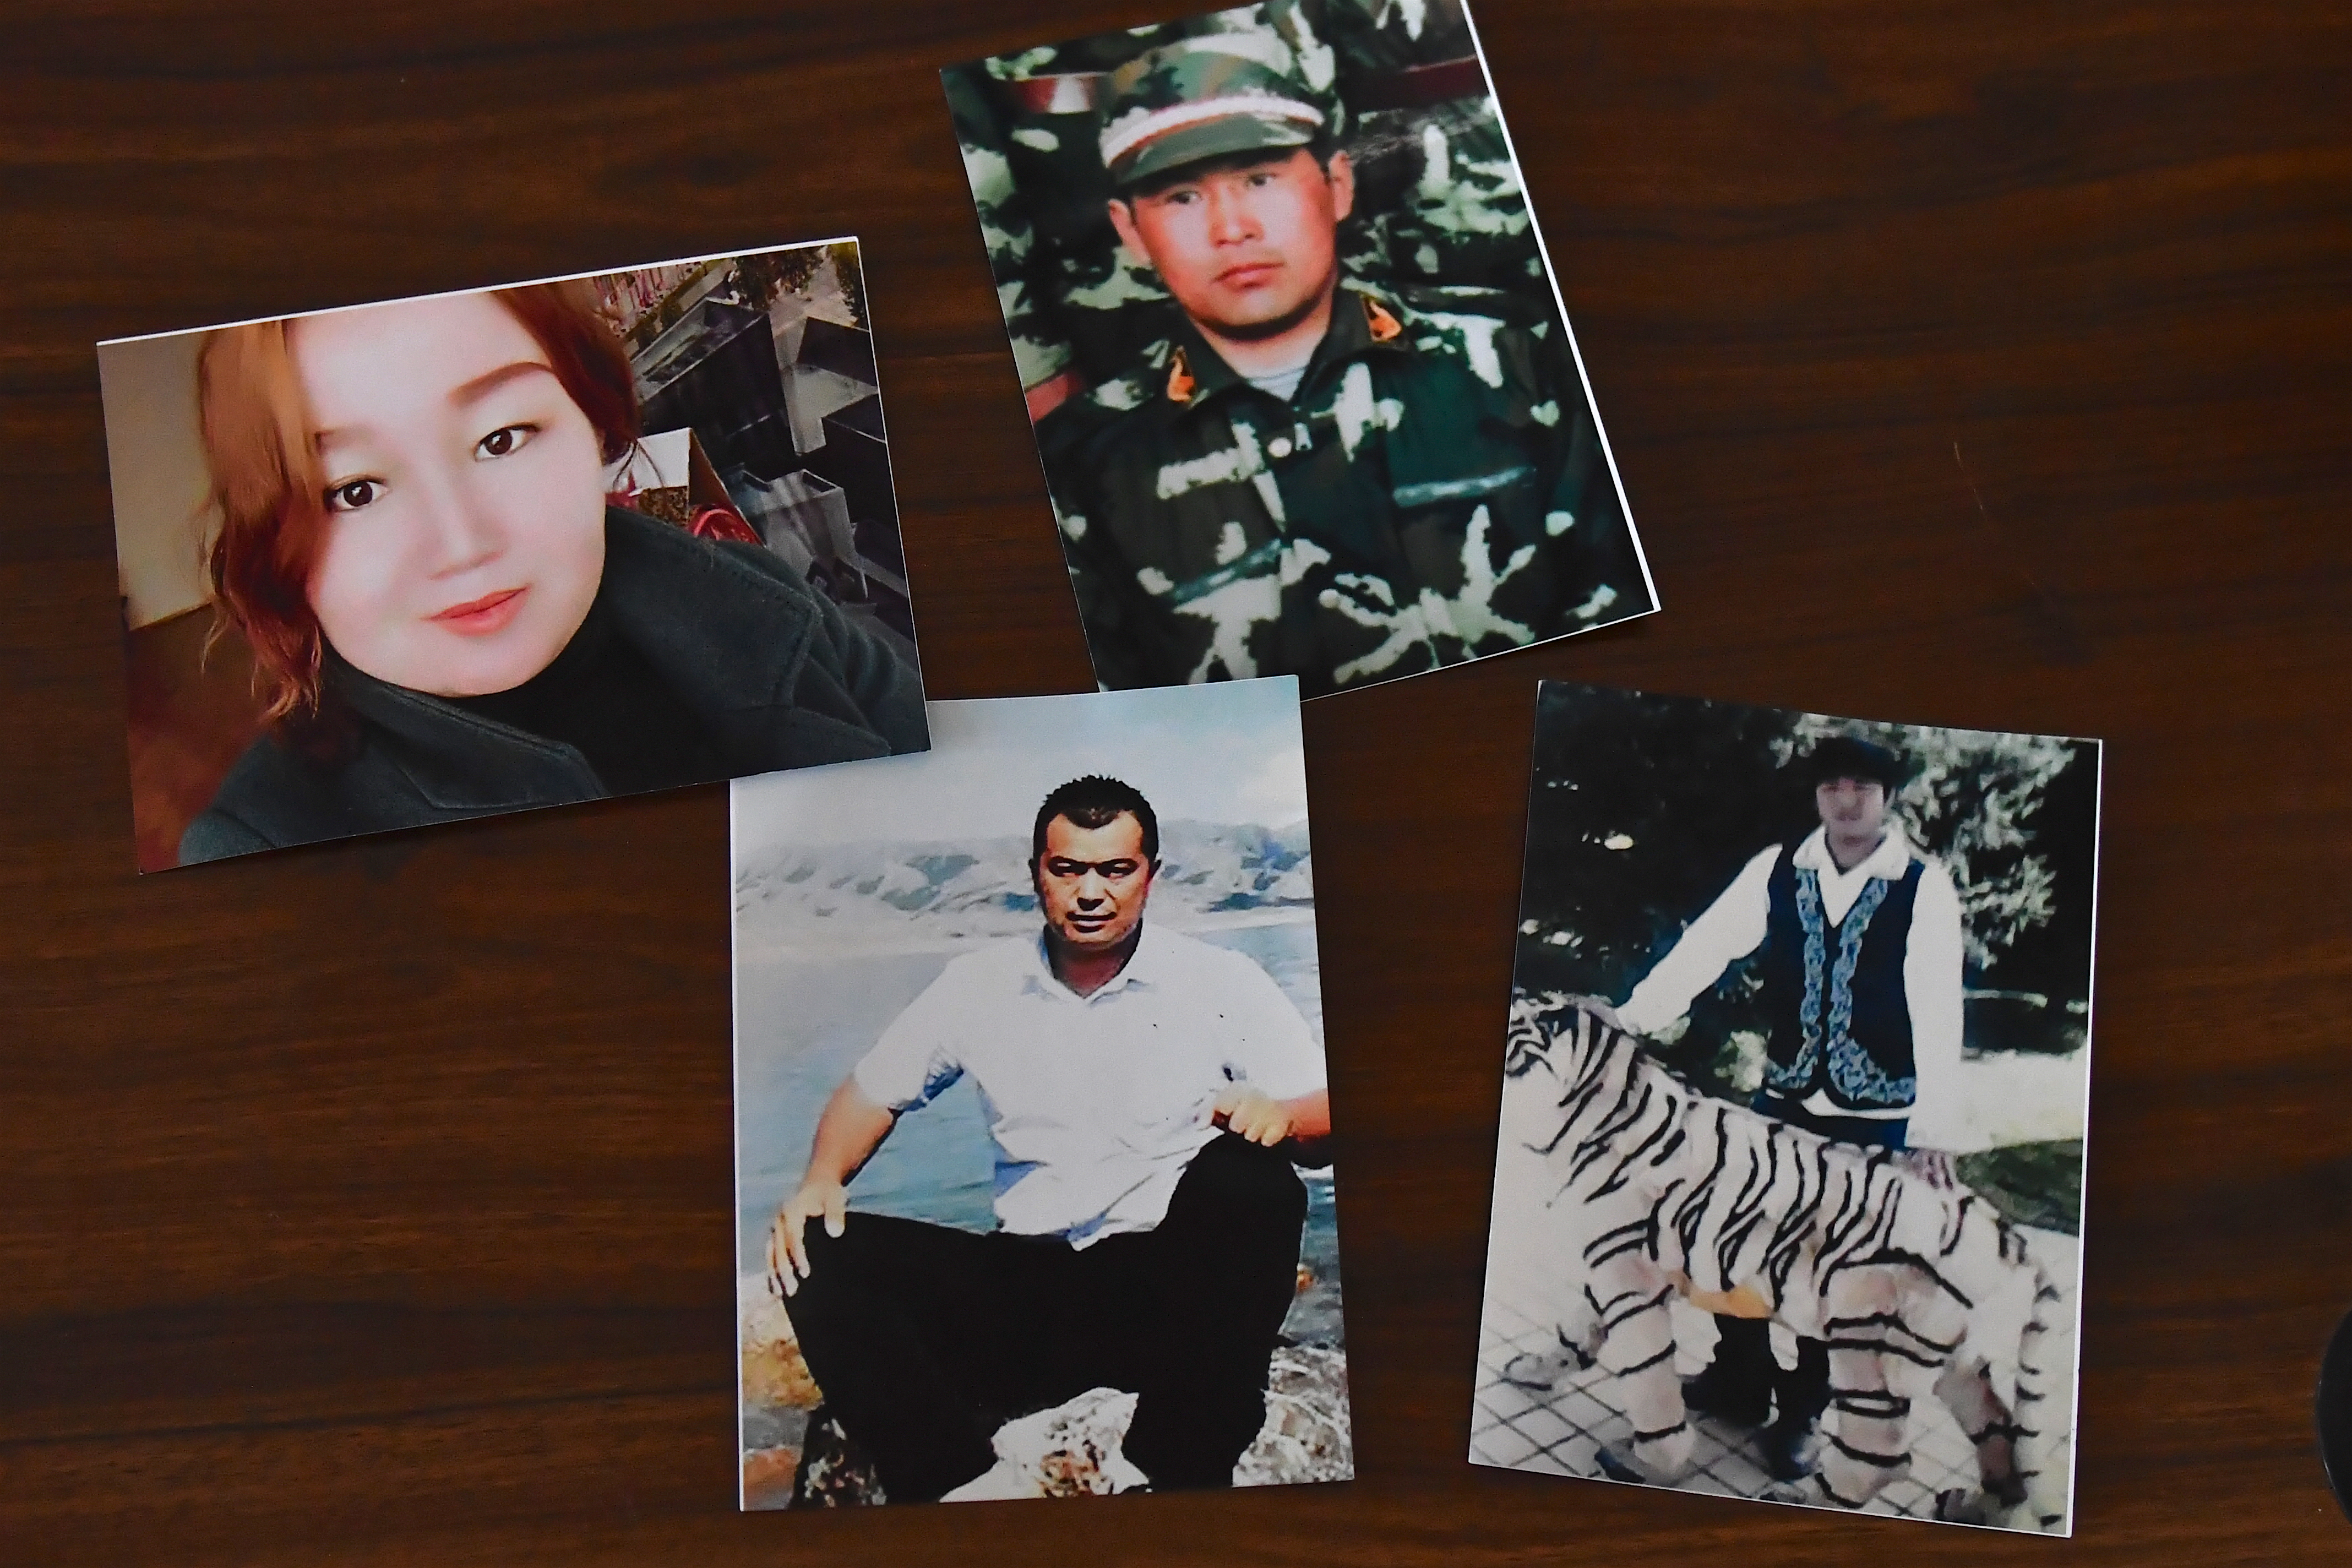 Ethnic Kazakhs from Xinjiang seek help from Almaty-based human rights group Ata-Jurt on behalf of family members held in China's reeducation camps. (Photo by Aliya Uteuova)